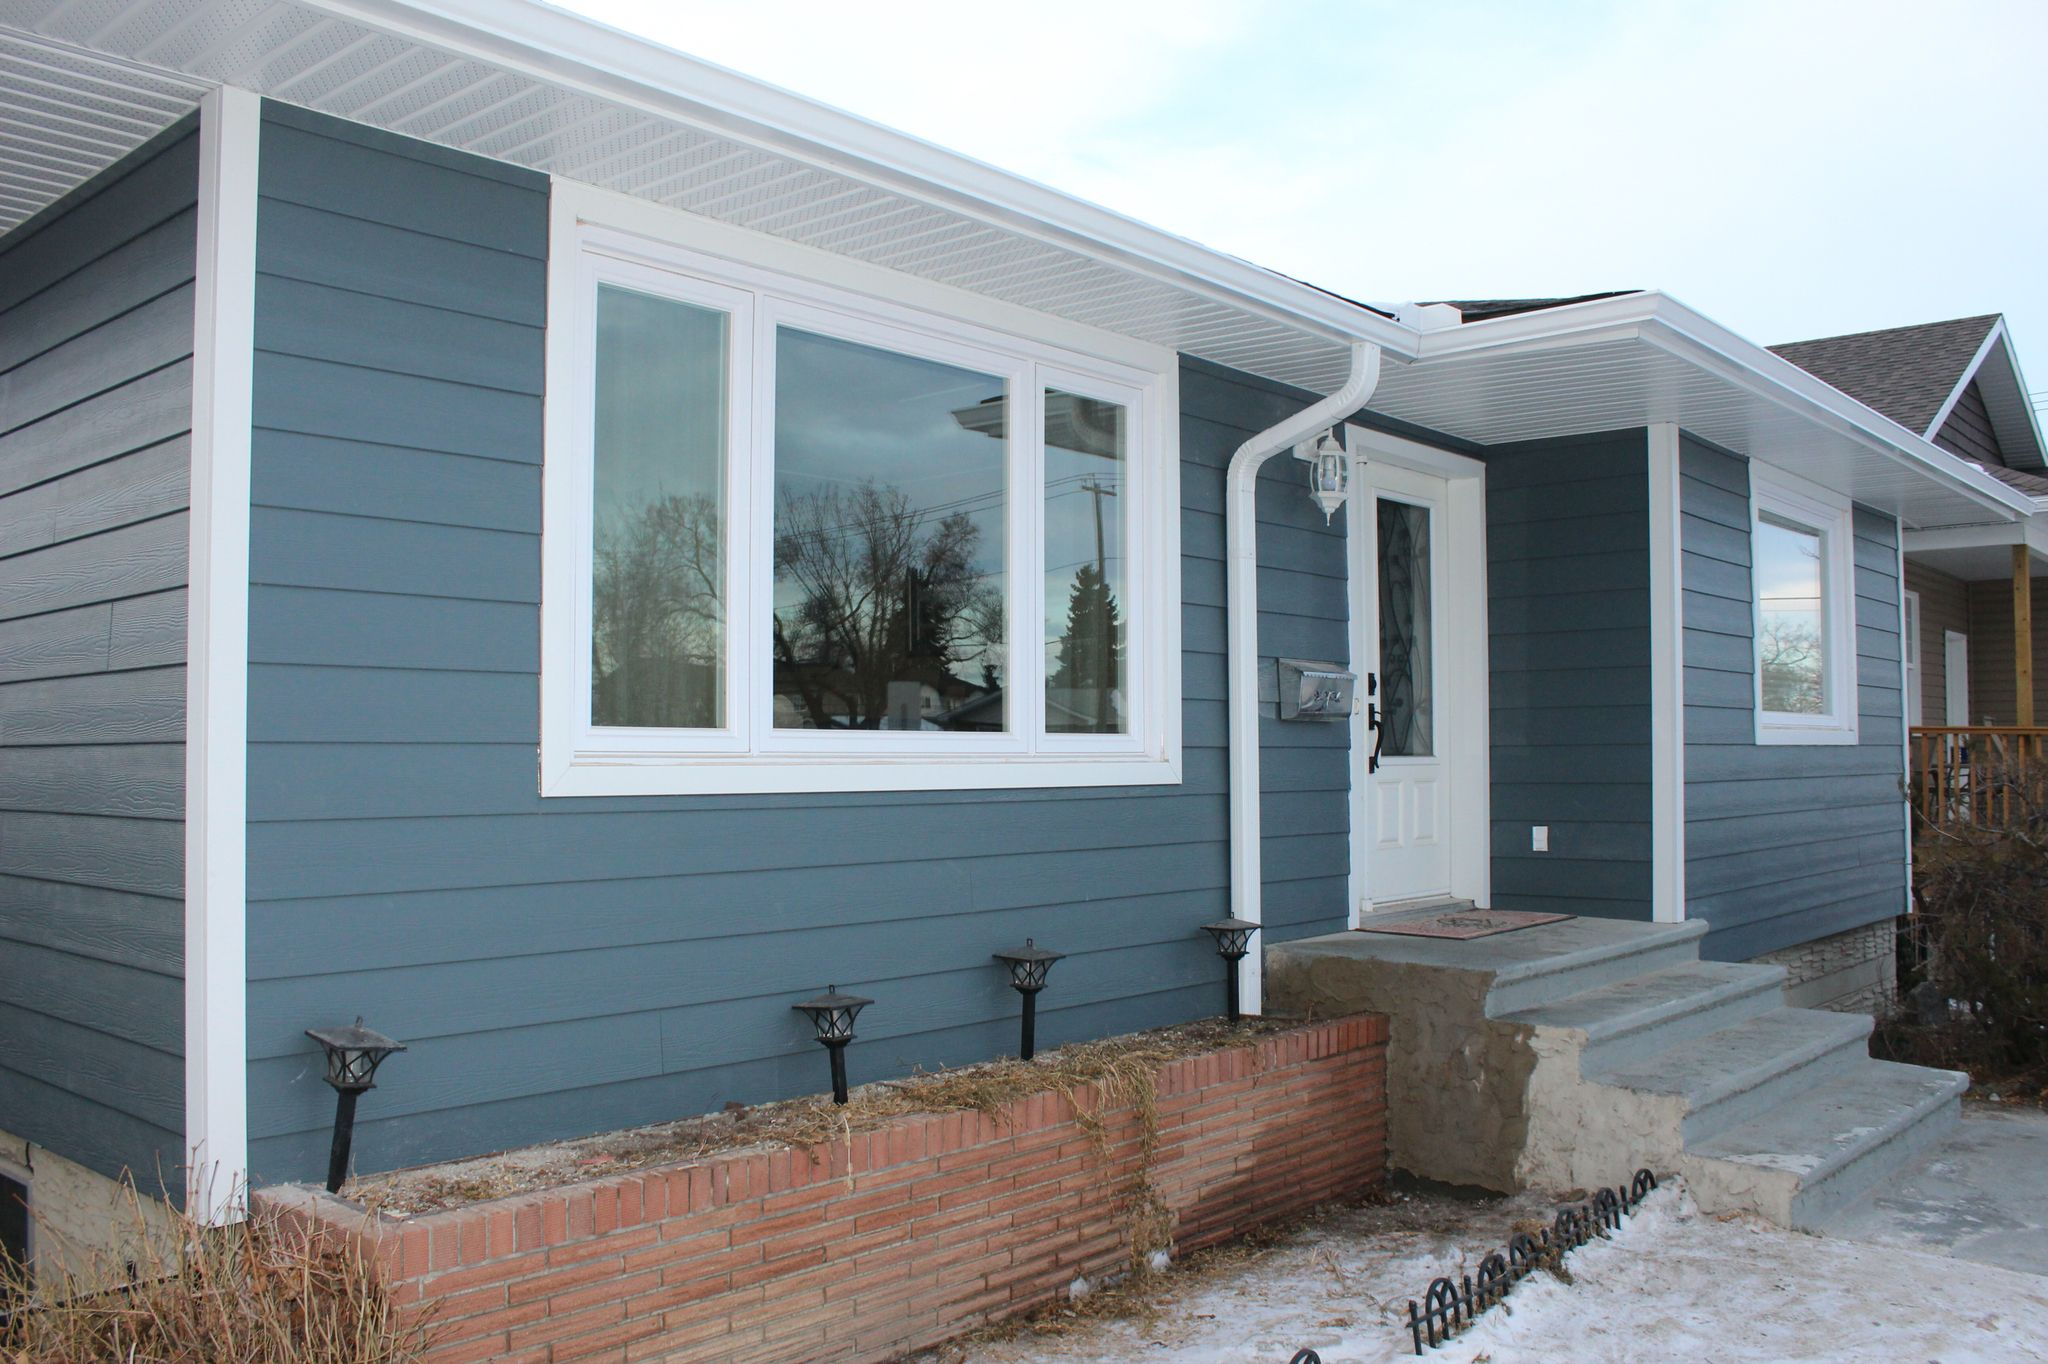 Evening Blue Hardie Board With White Trim Siding Projects - Exterior hardie board